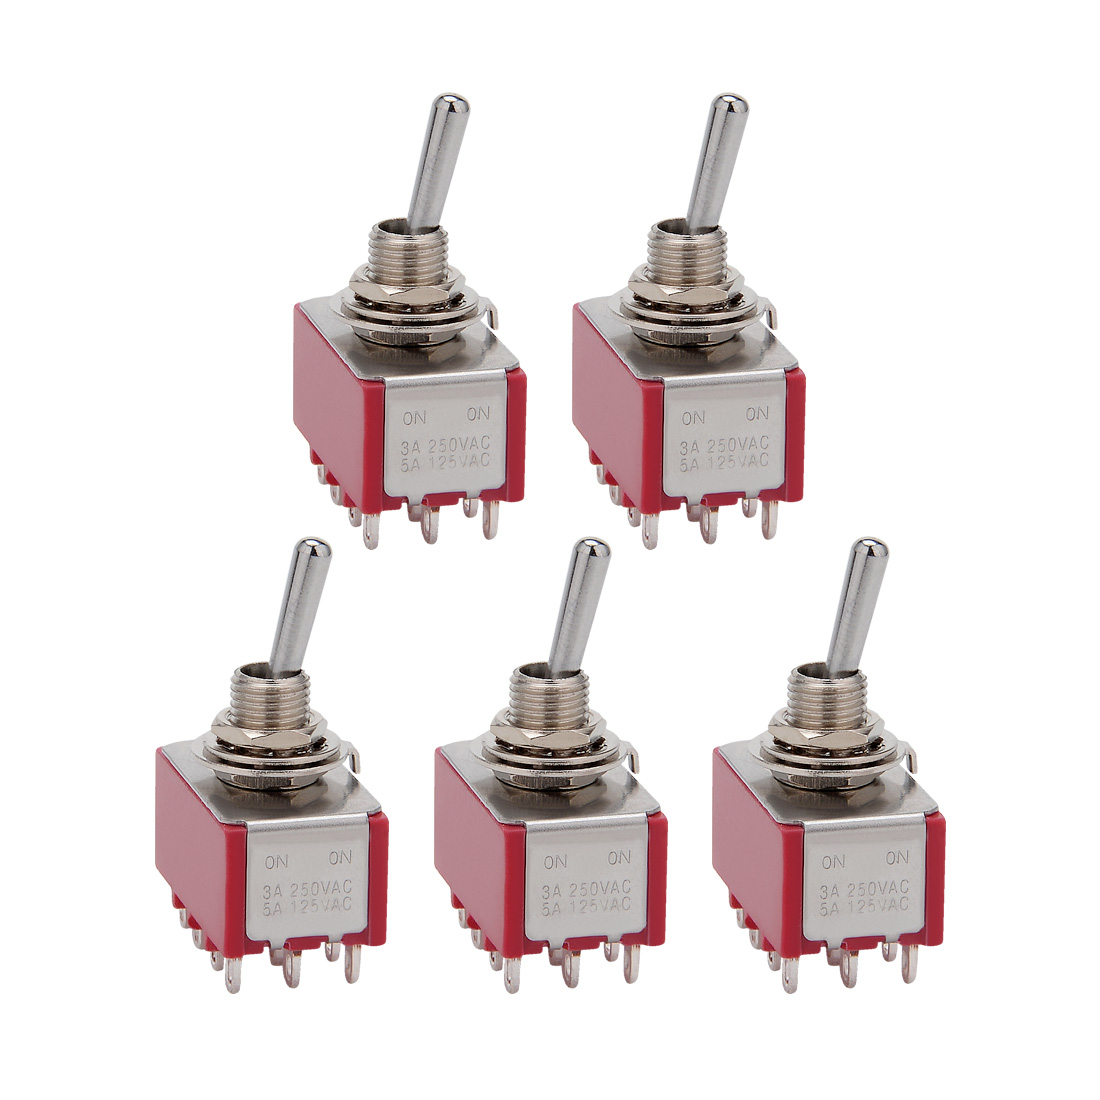 5Pcs AC 125V/5A 250V/3A ON/ON 2 Positions 12 Terminals 4PDT Toggle Switch